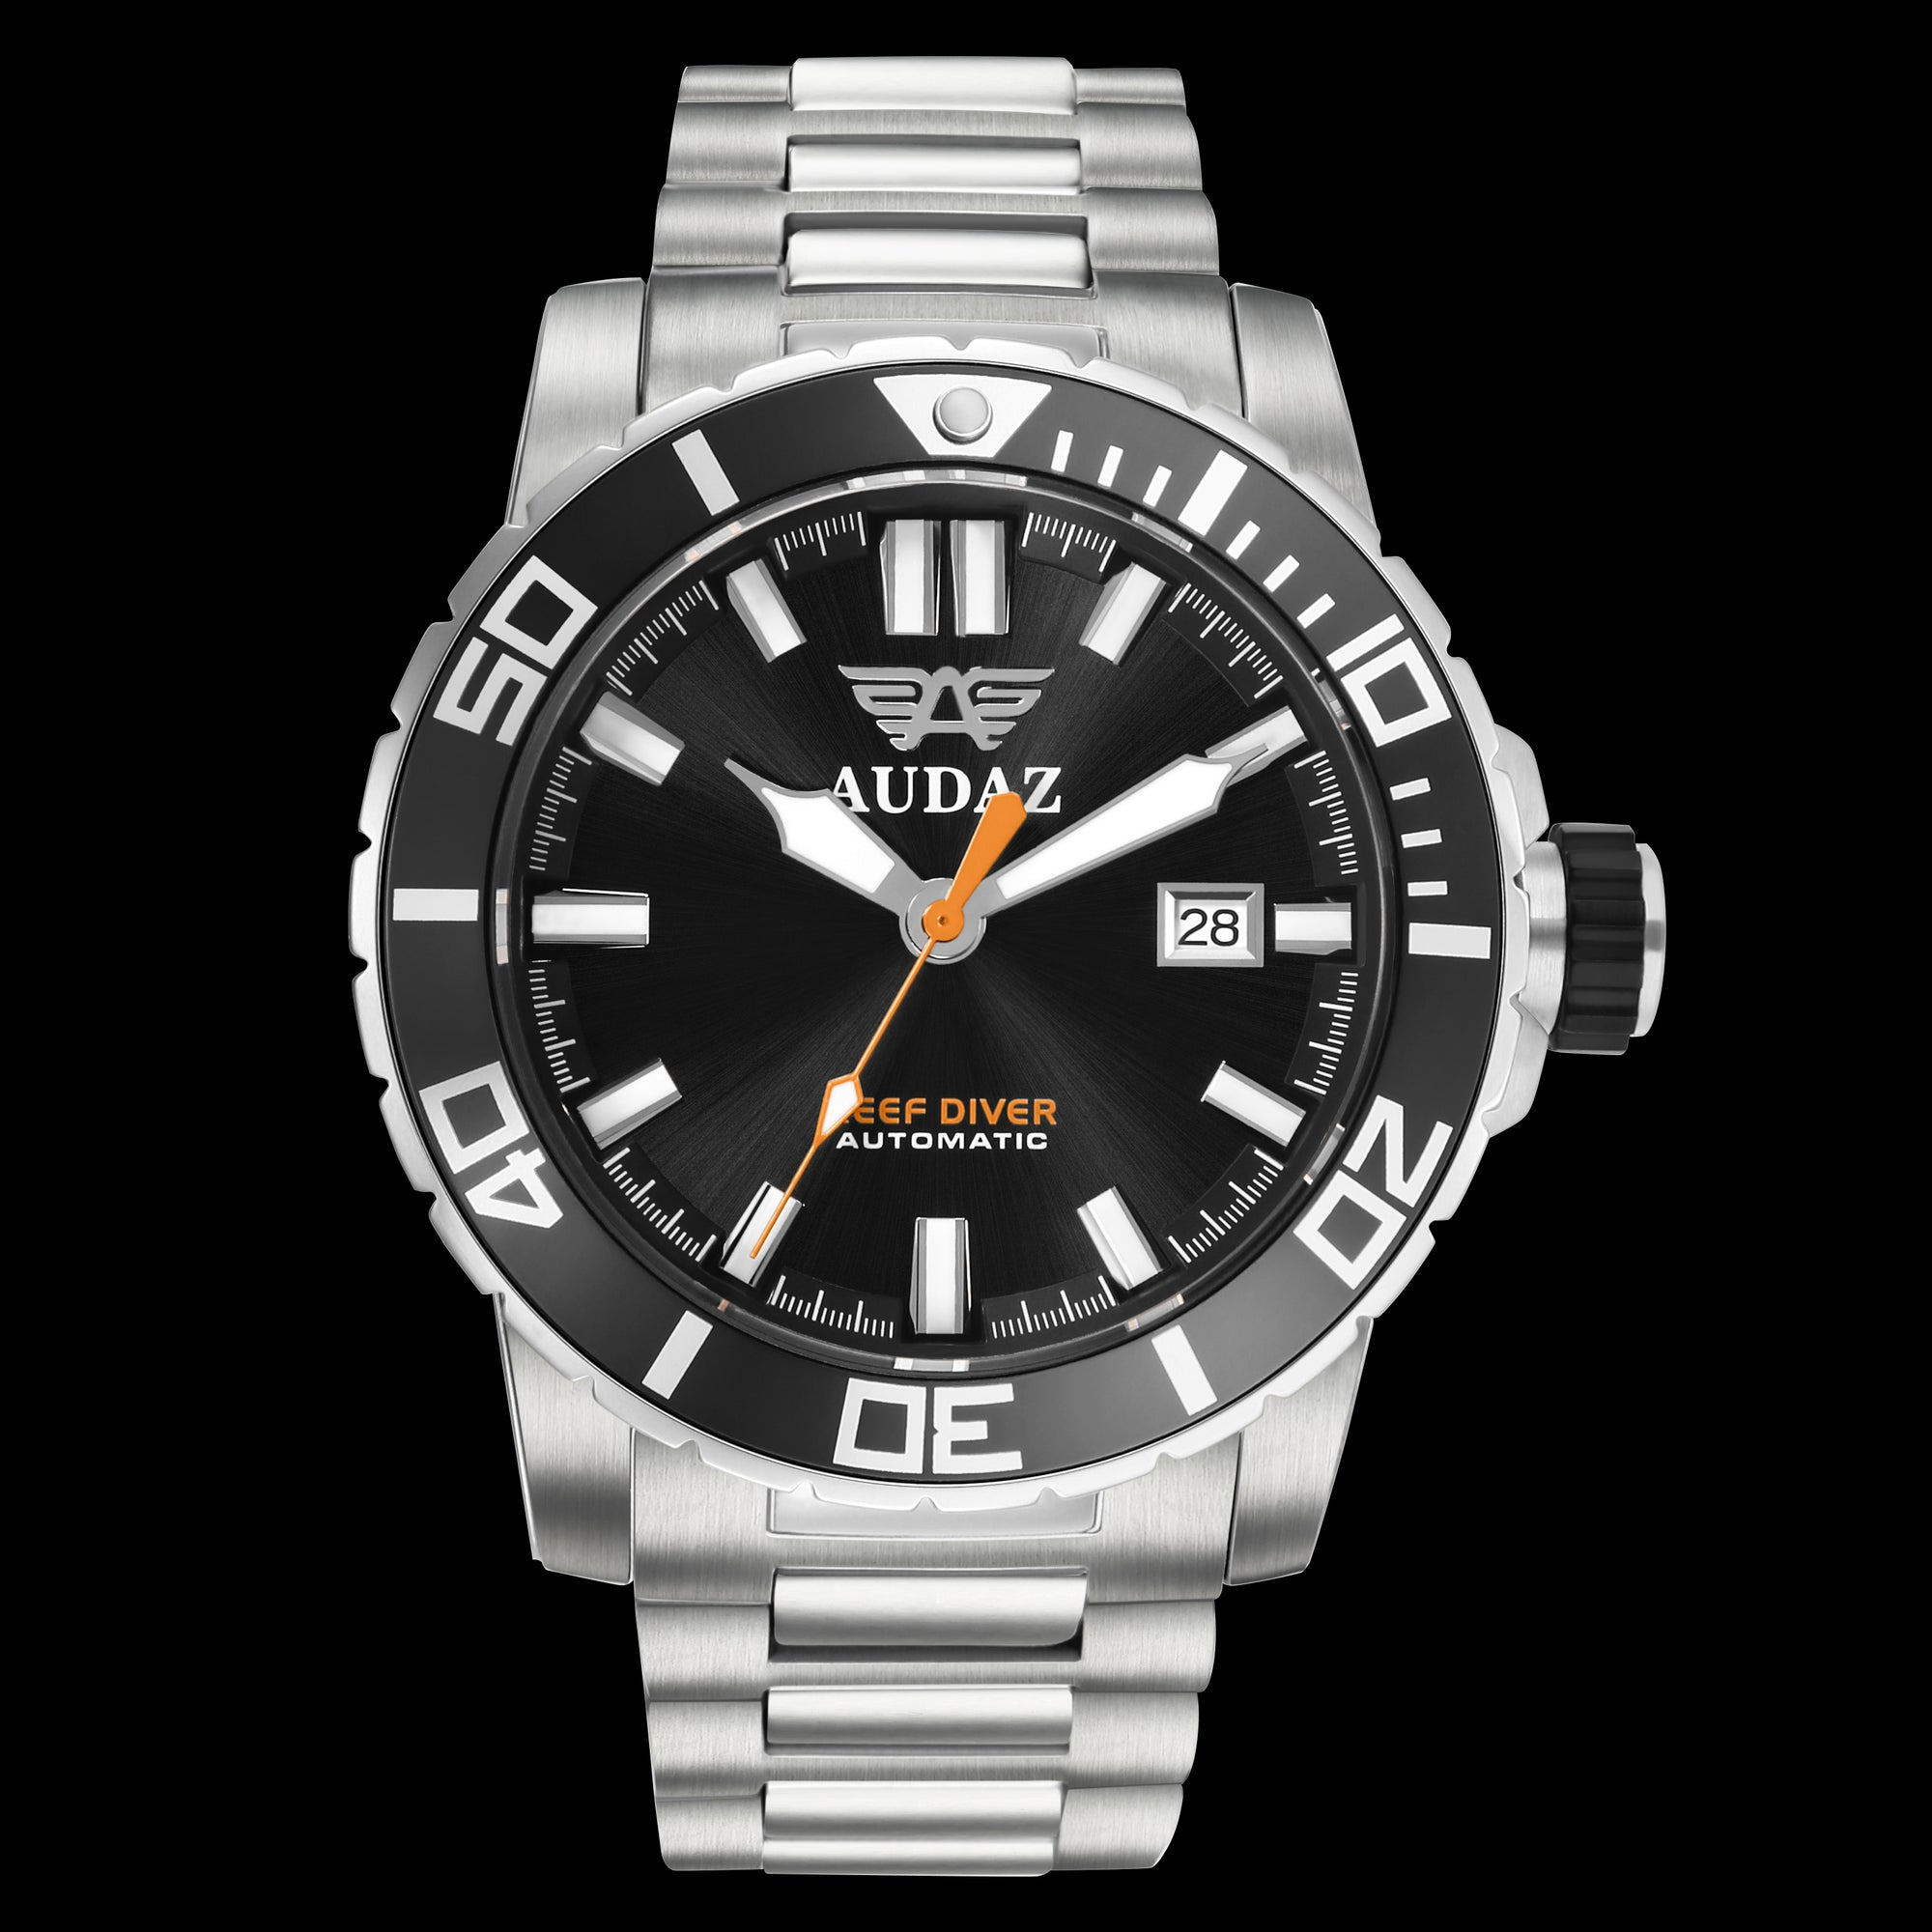 Reef Diver Watches ADZ-2040-01